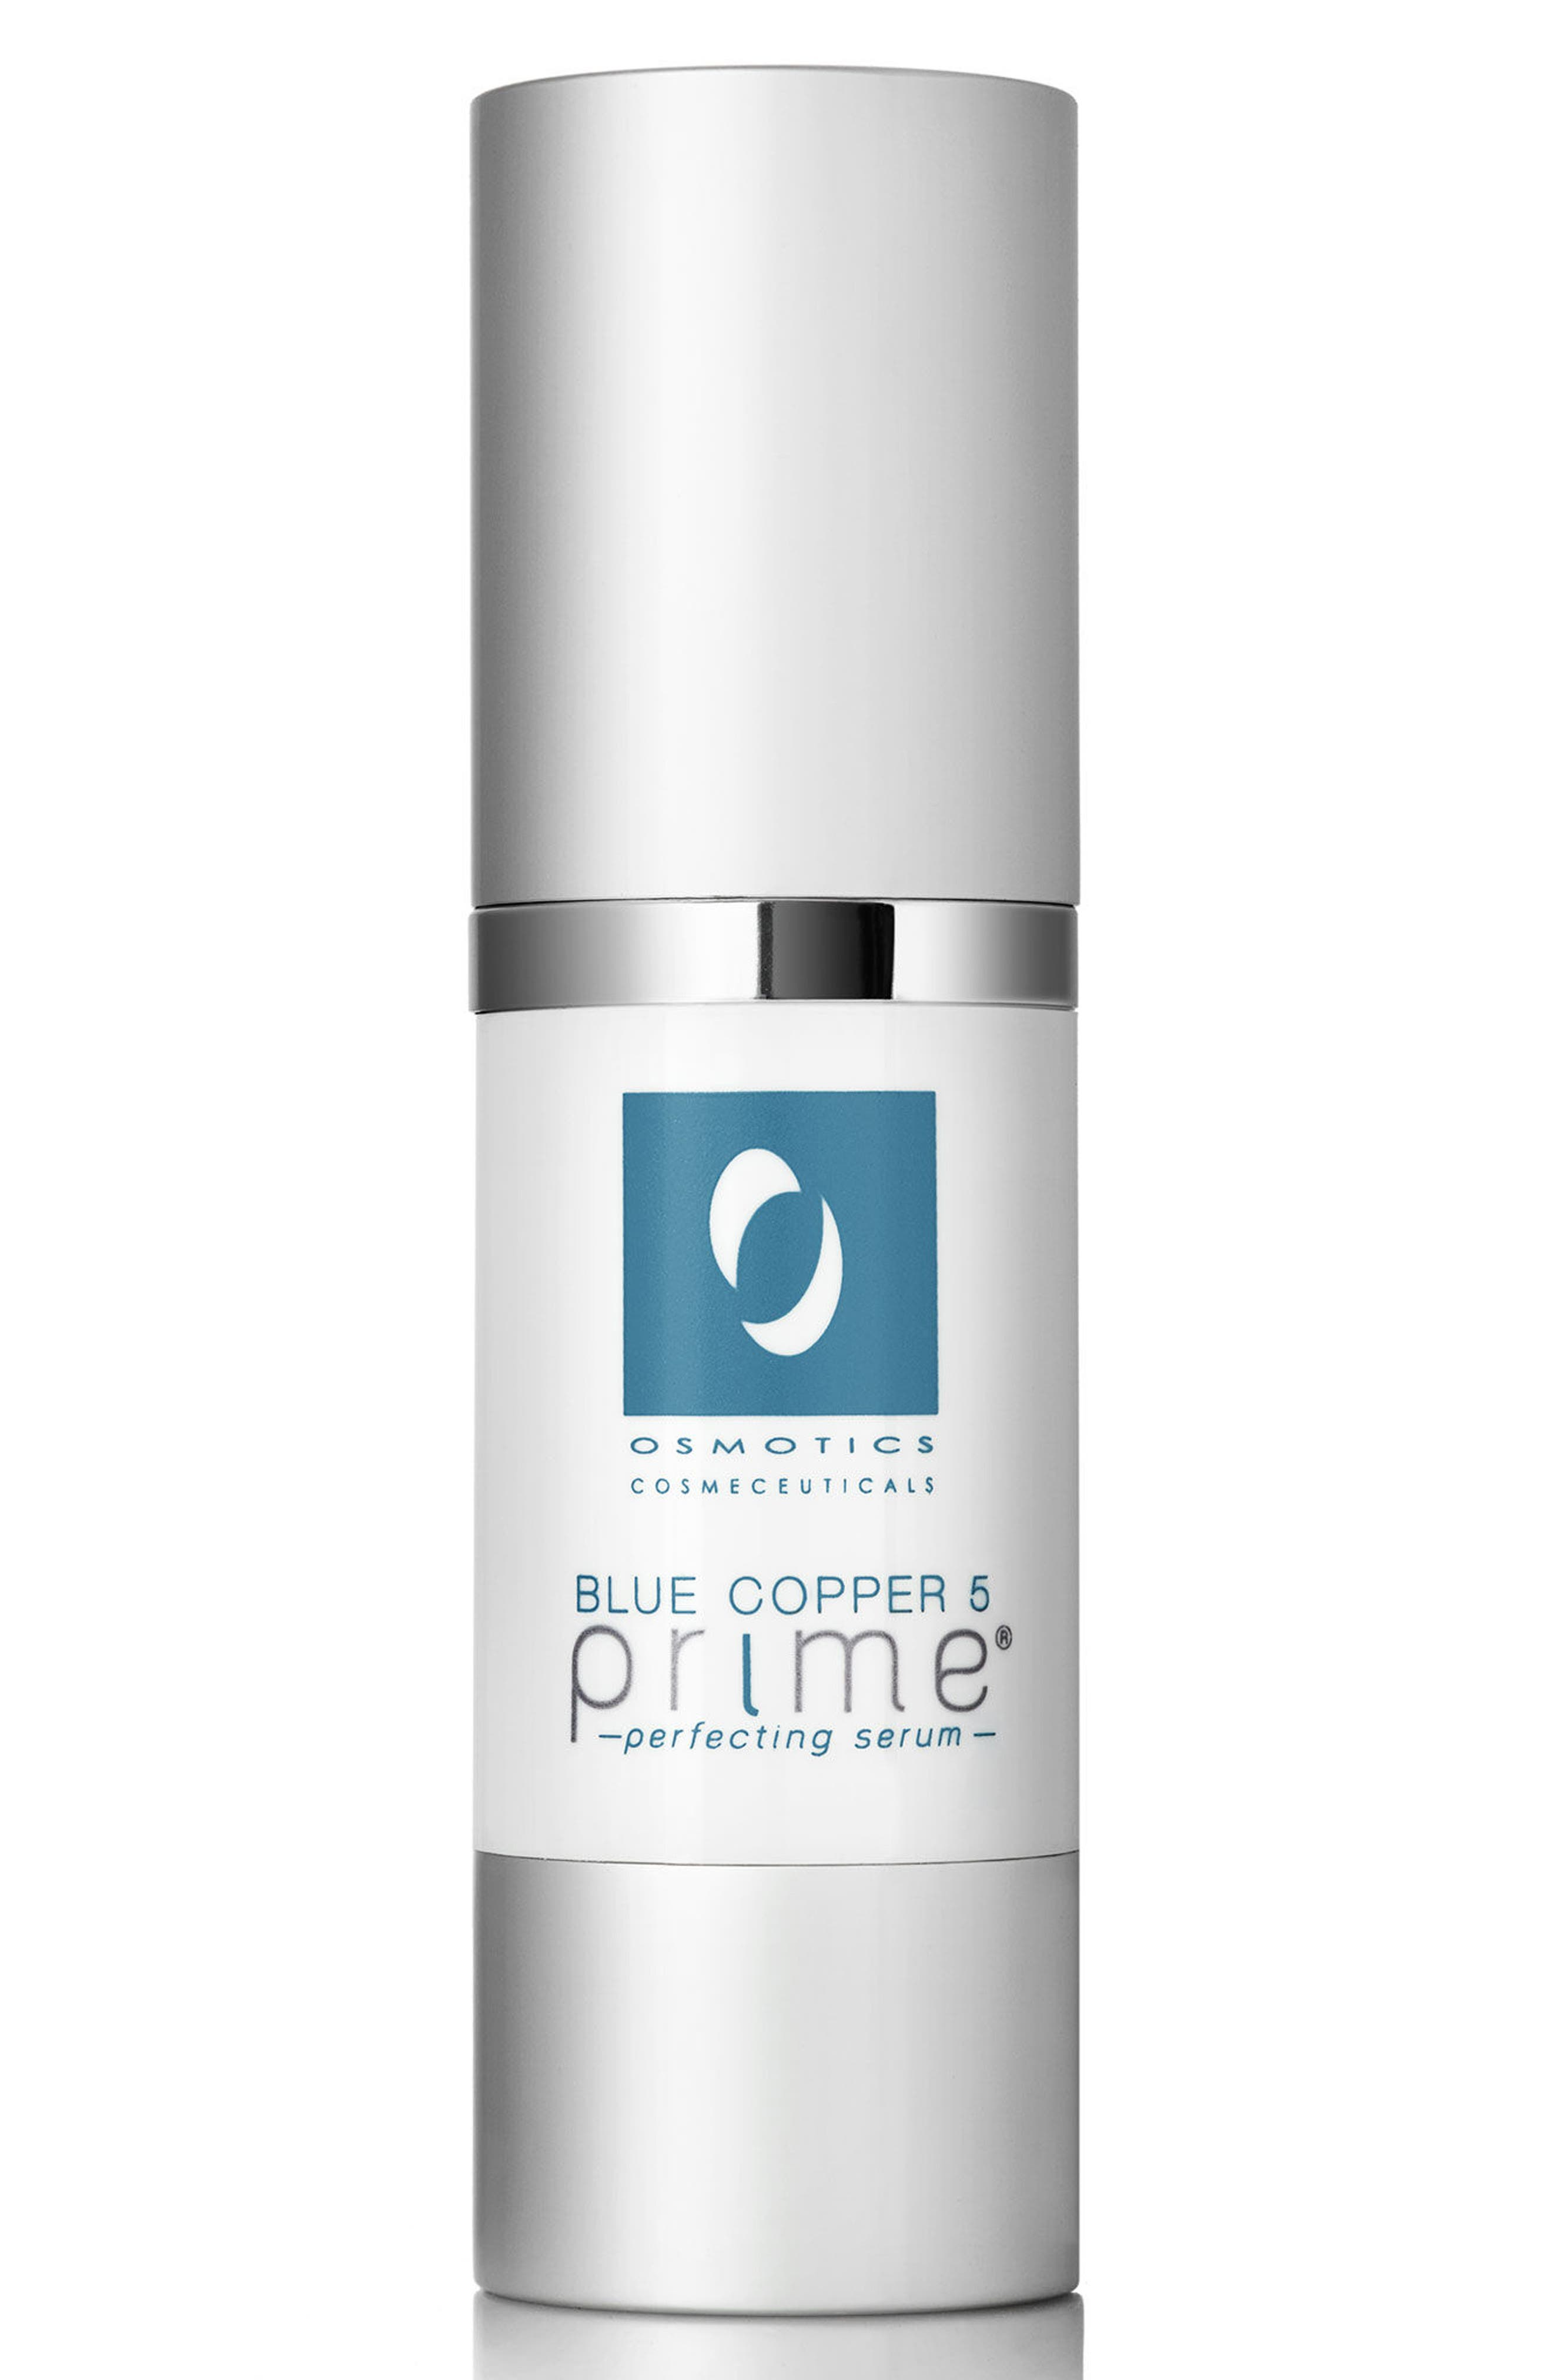 Osmotics Cosmeceuticals Blue Copper 5 Prime Essential Perfecting Serum